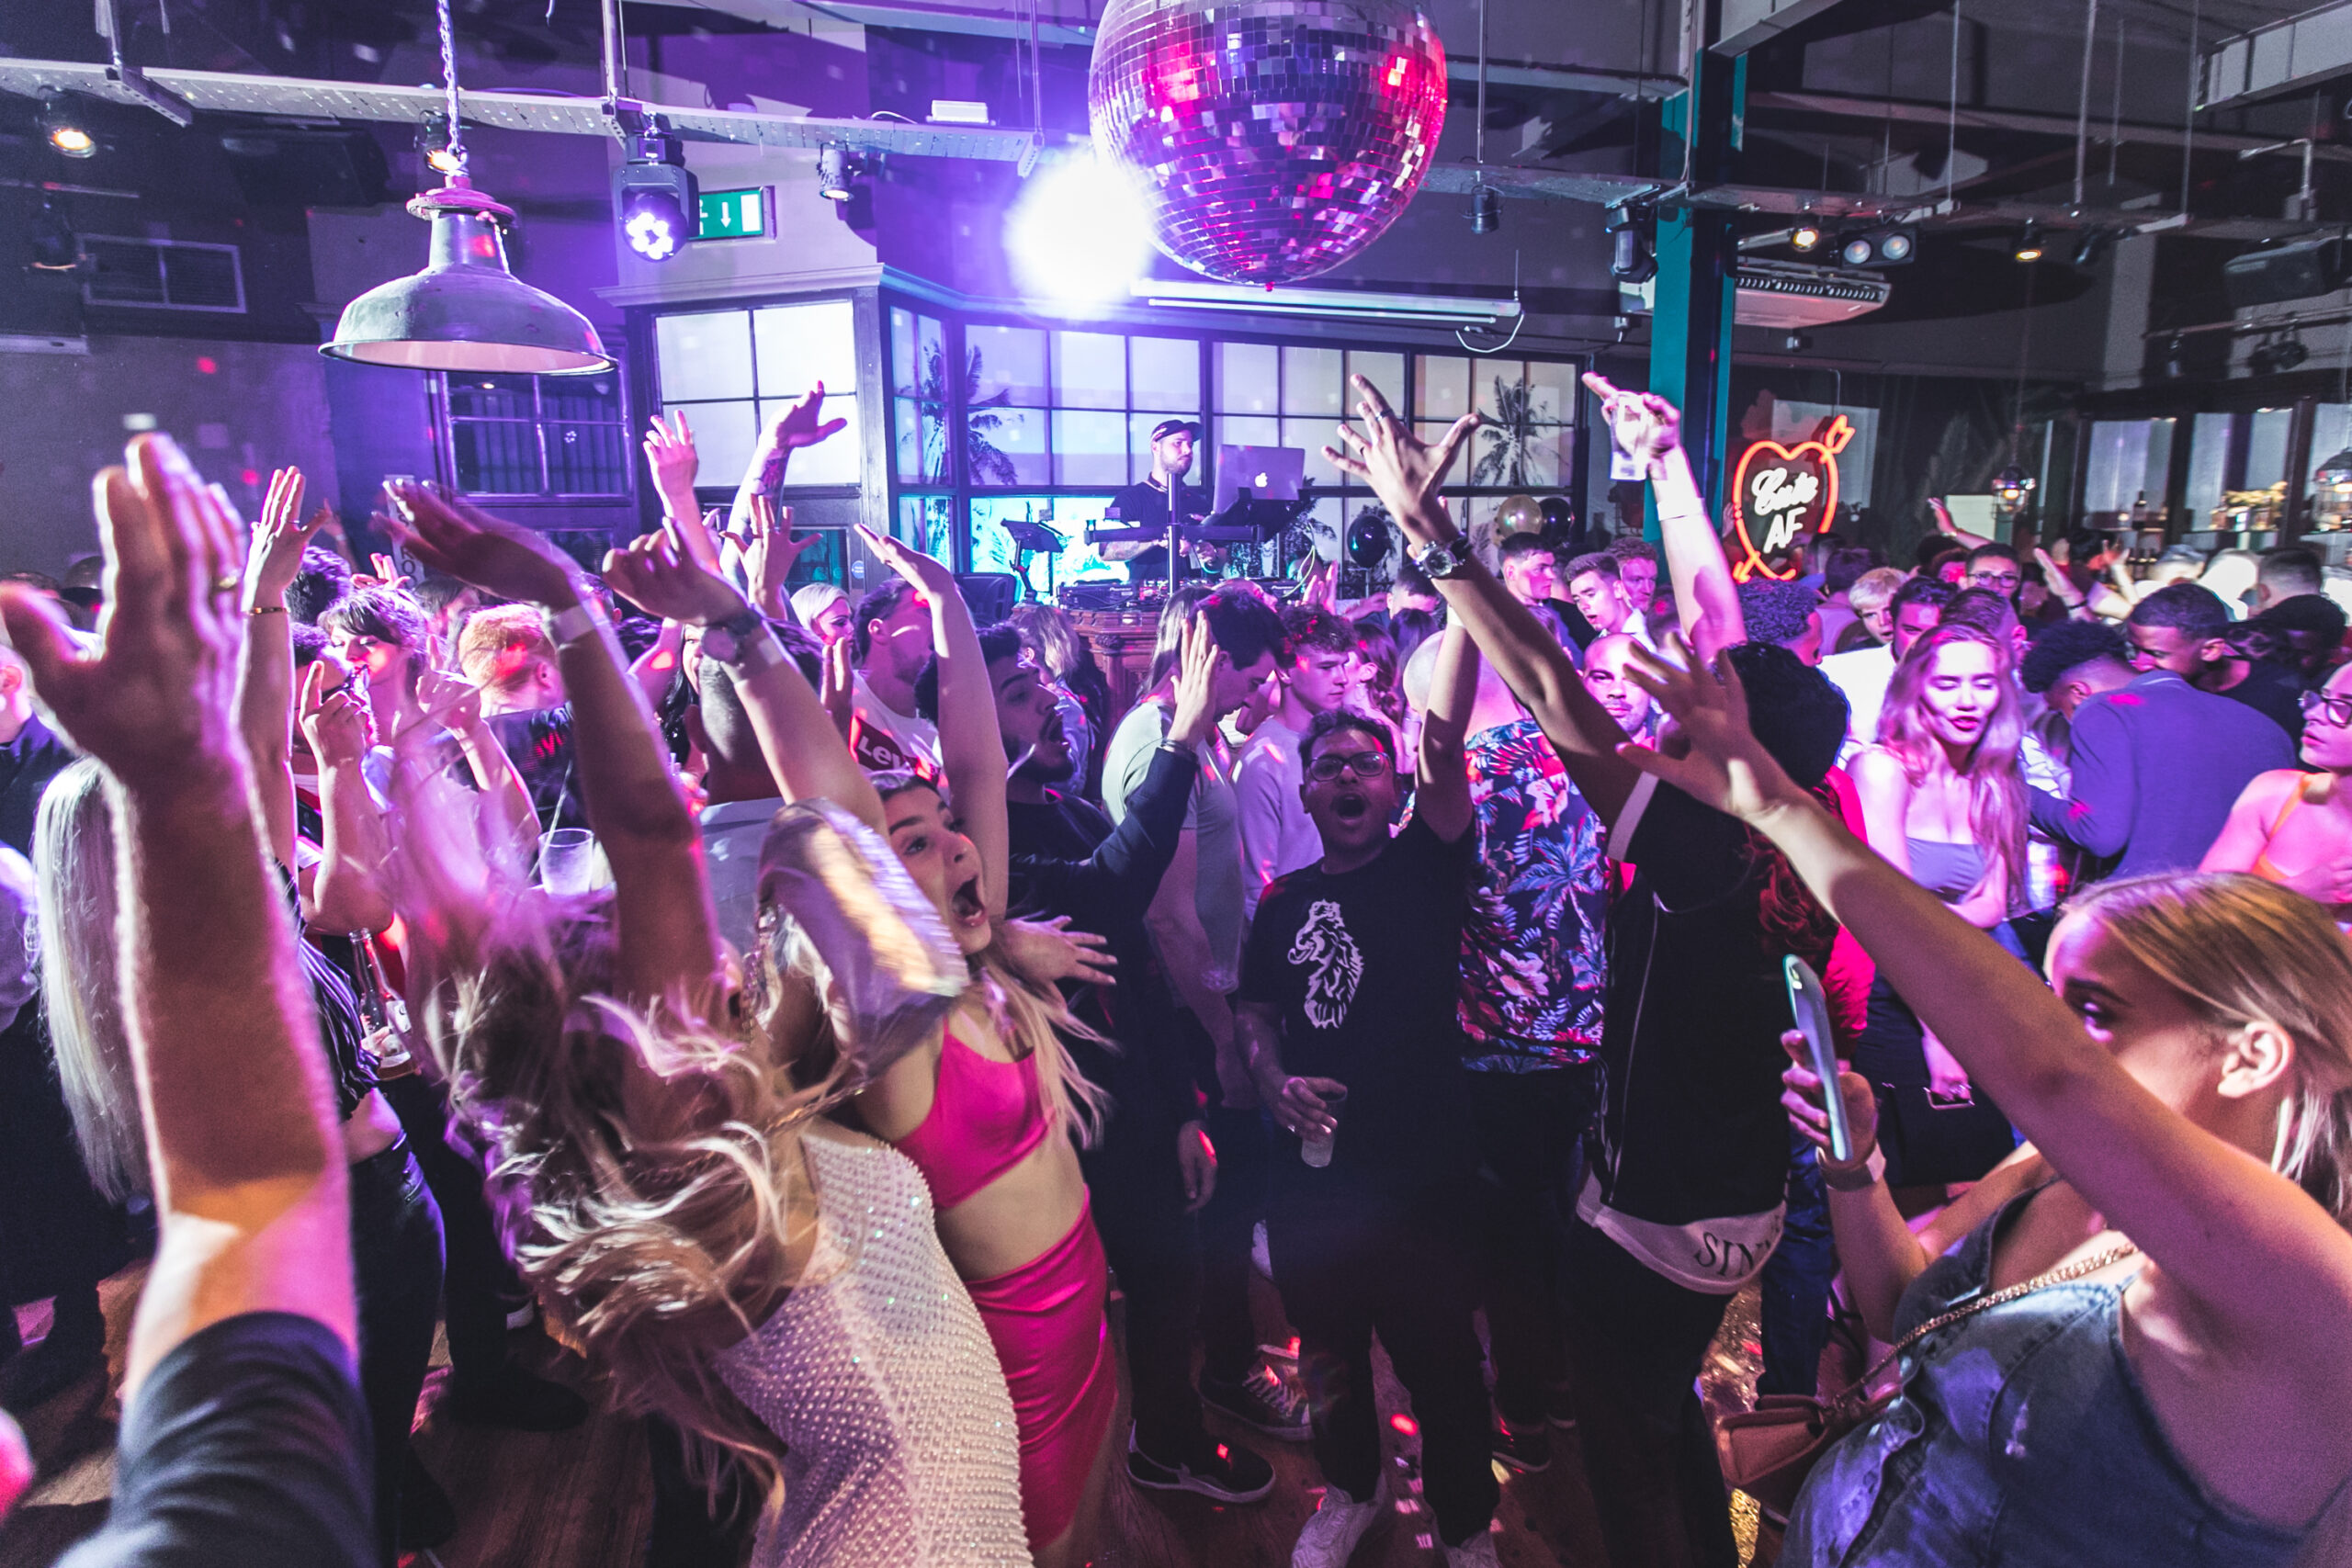 Cardiff Freedom Week – Nightclubs Prepare to Open from August 7th